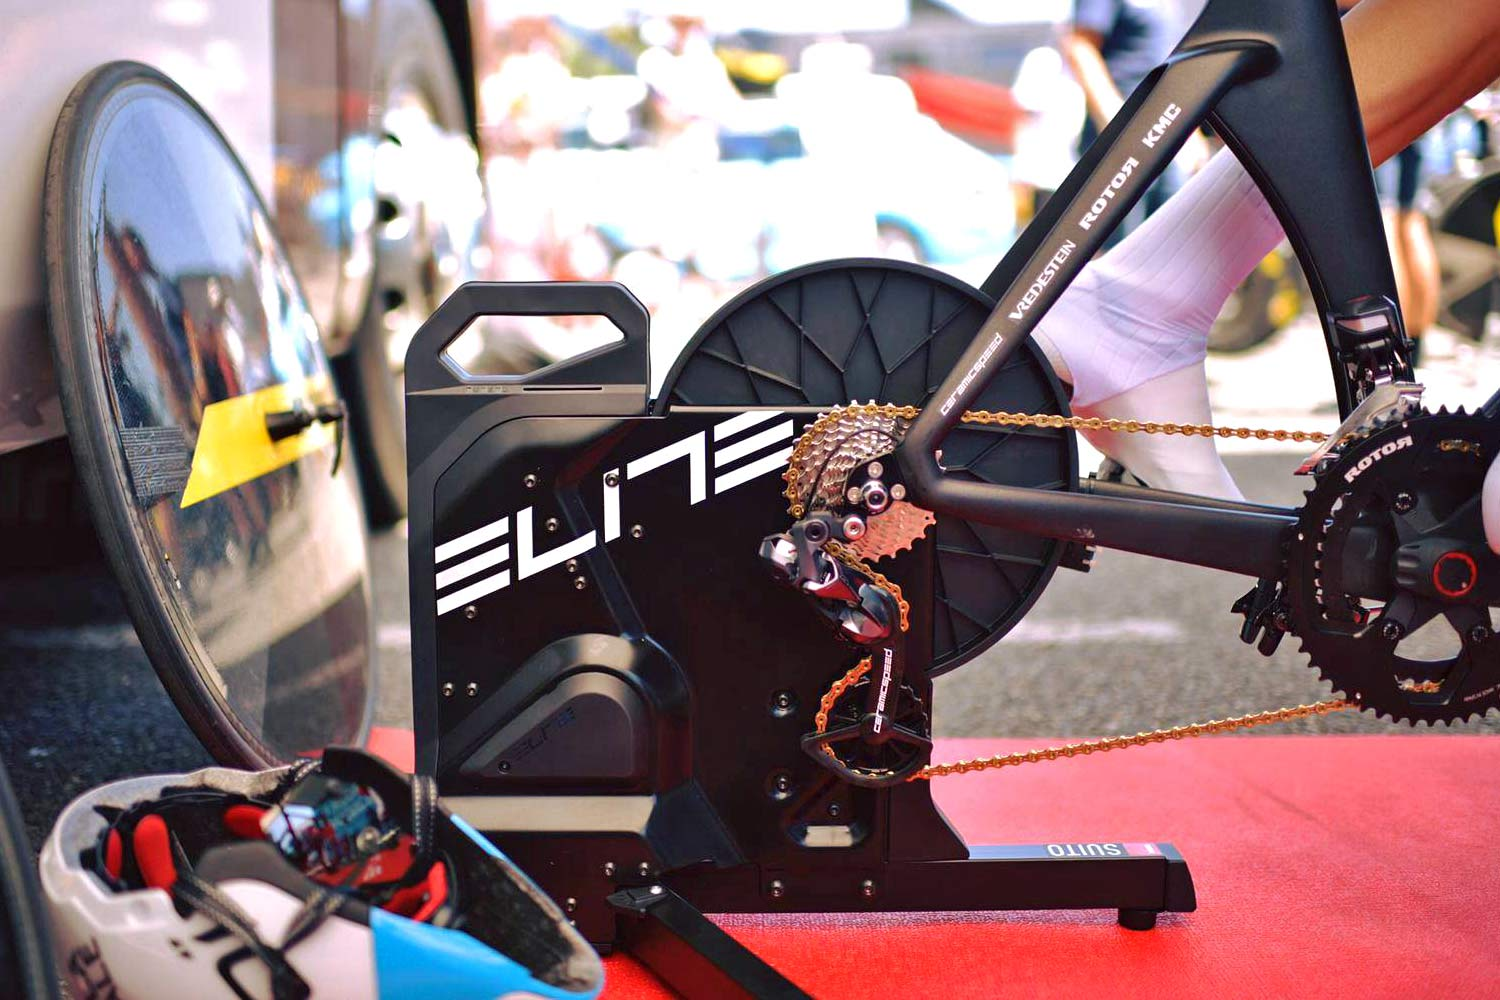 https://bikerumor.com/2019/07/24/elite-suito-spins-up-new-direct-drive-fully-interactive-smart-trainer/